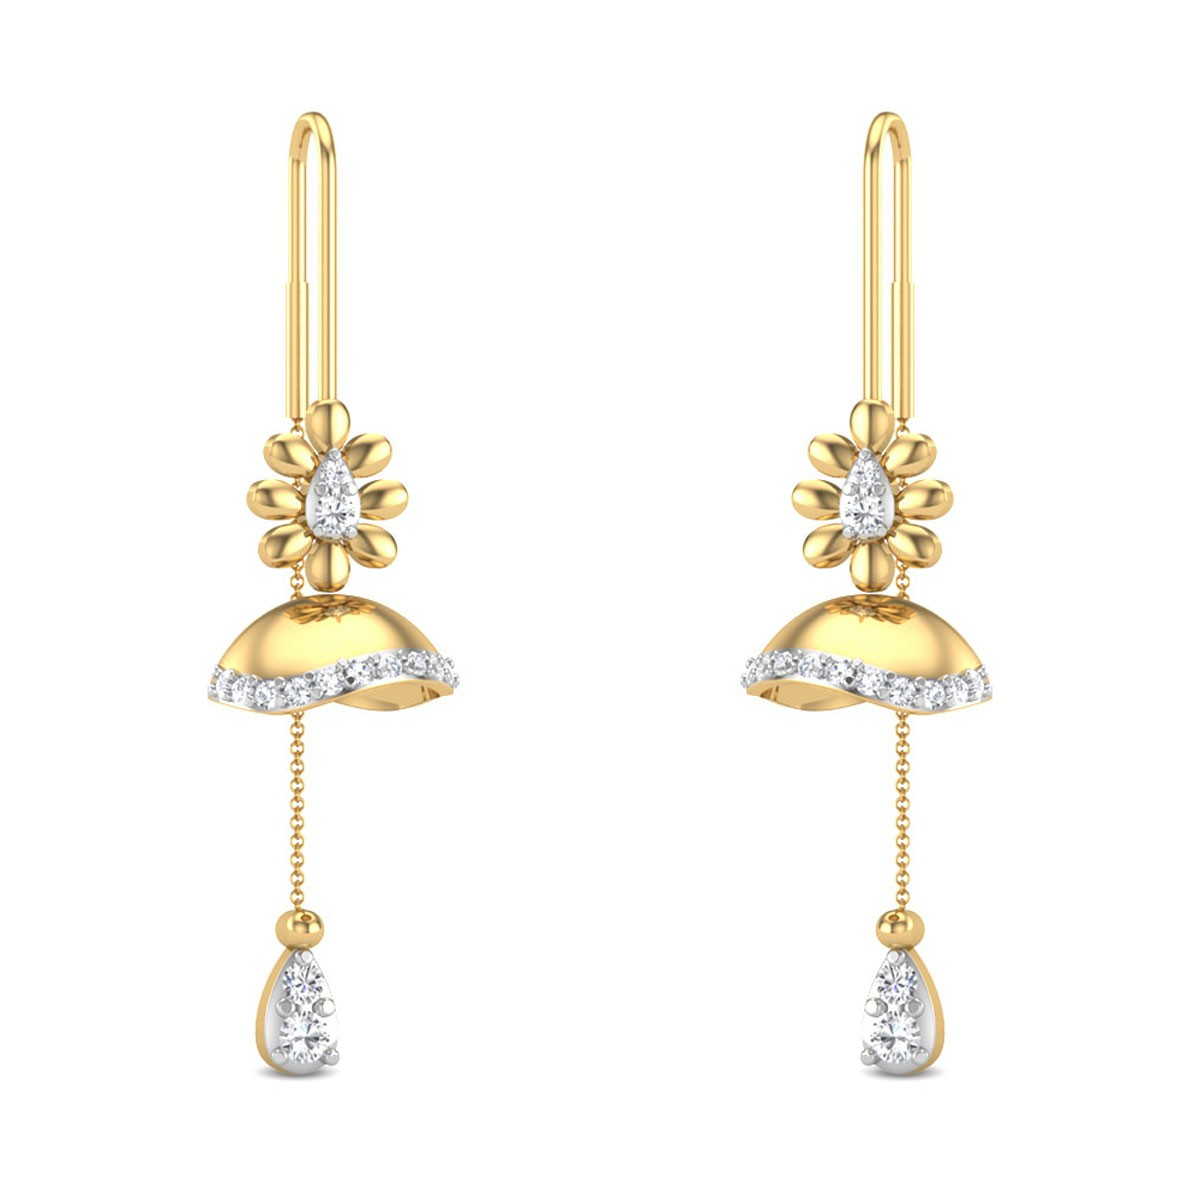 Jaibrian Floral Sui Dhaga Diamond Earrings